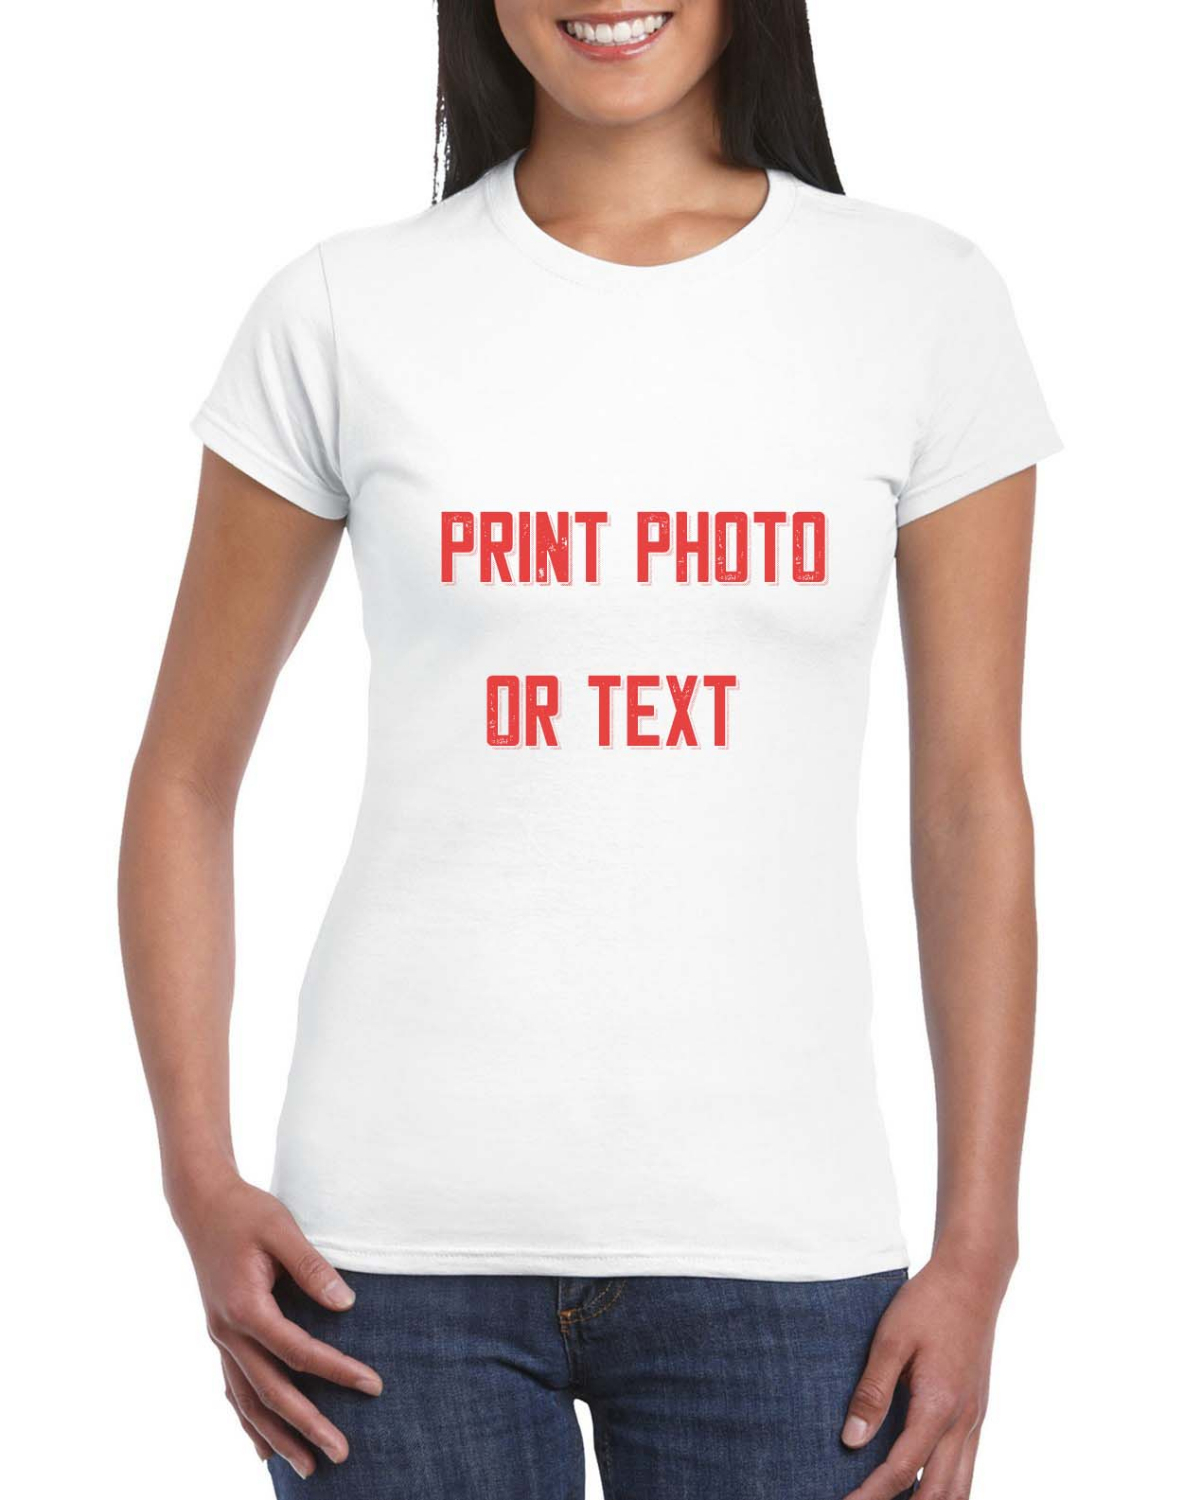 Custom Women's Fitted T Shirts Ultra Soft Add Your Text For Women Premium Cotton T Shirt